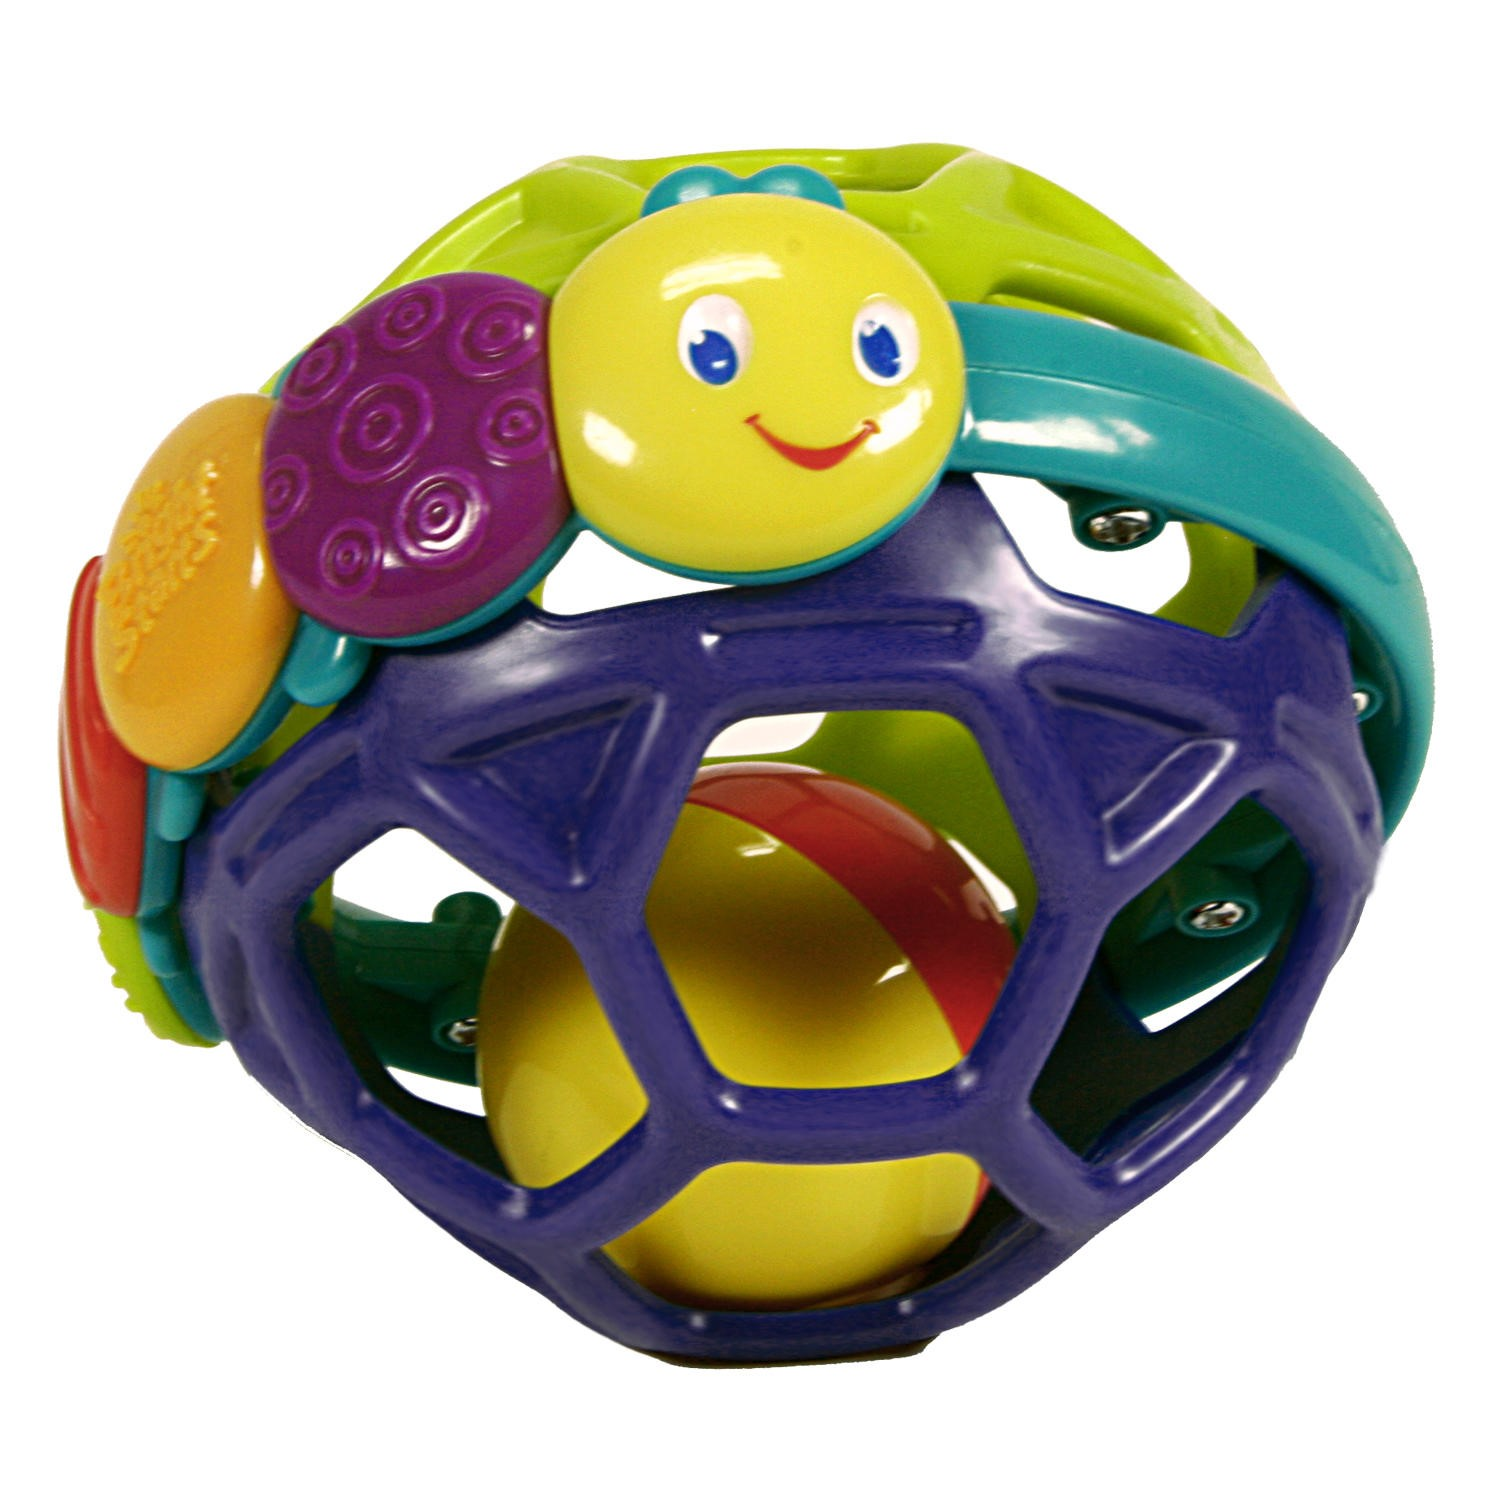 Bright Starts Flexi Ball Toy by Bright Starts